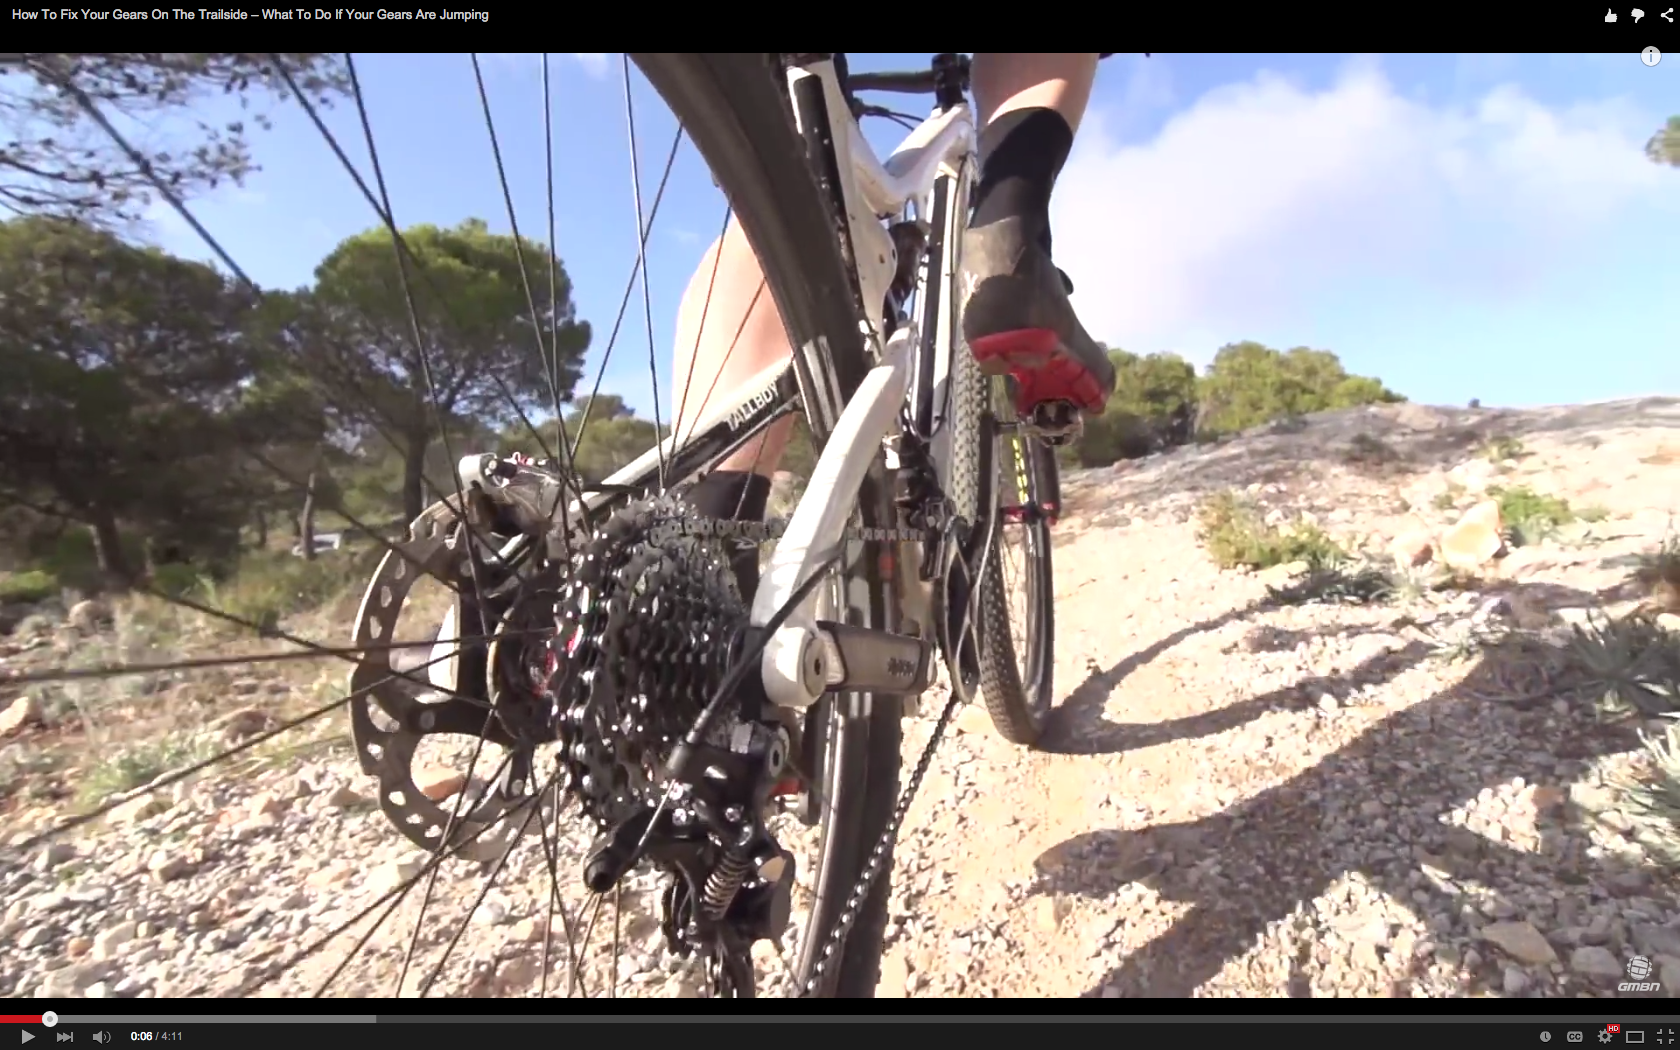 Video: How To Fix Your Gears On The Trailside – What To Do If Your